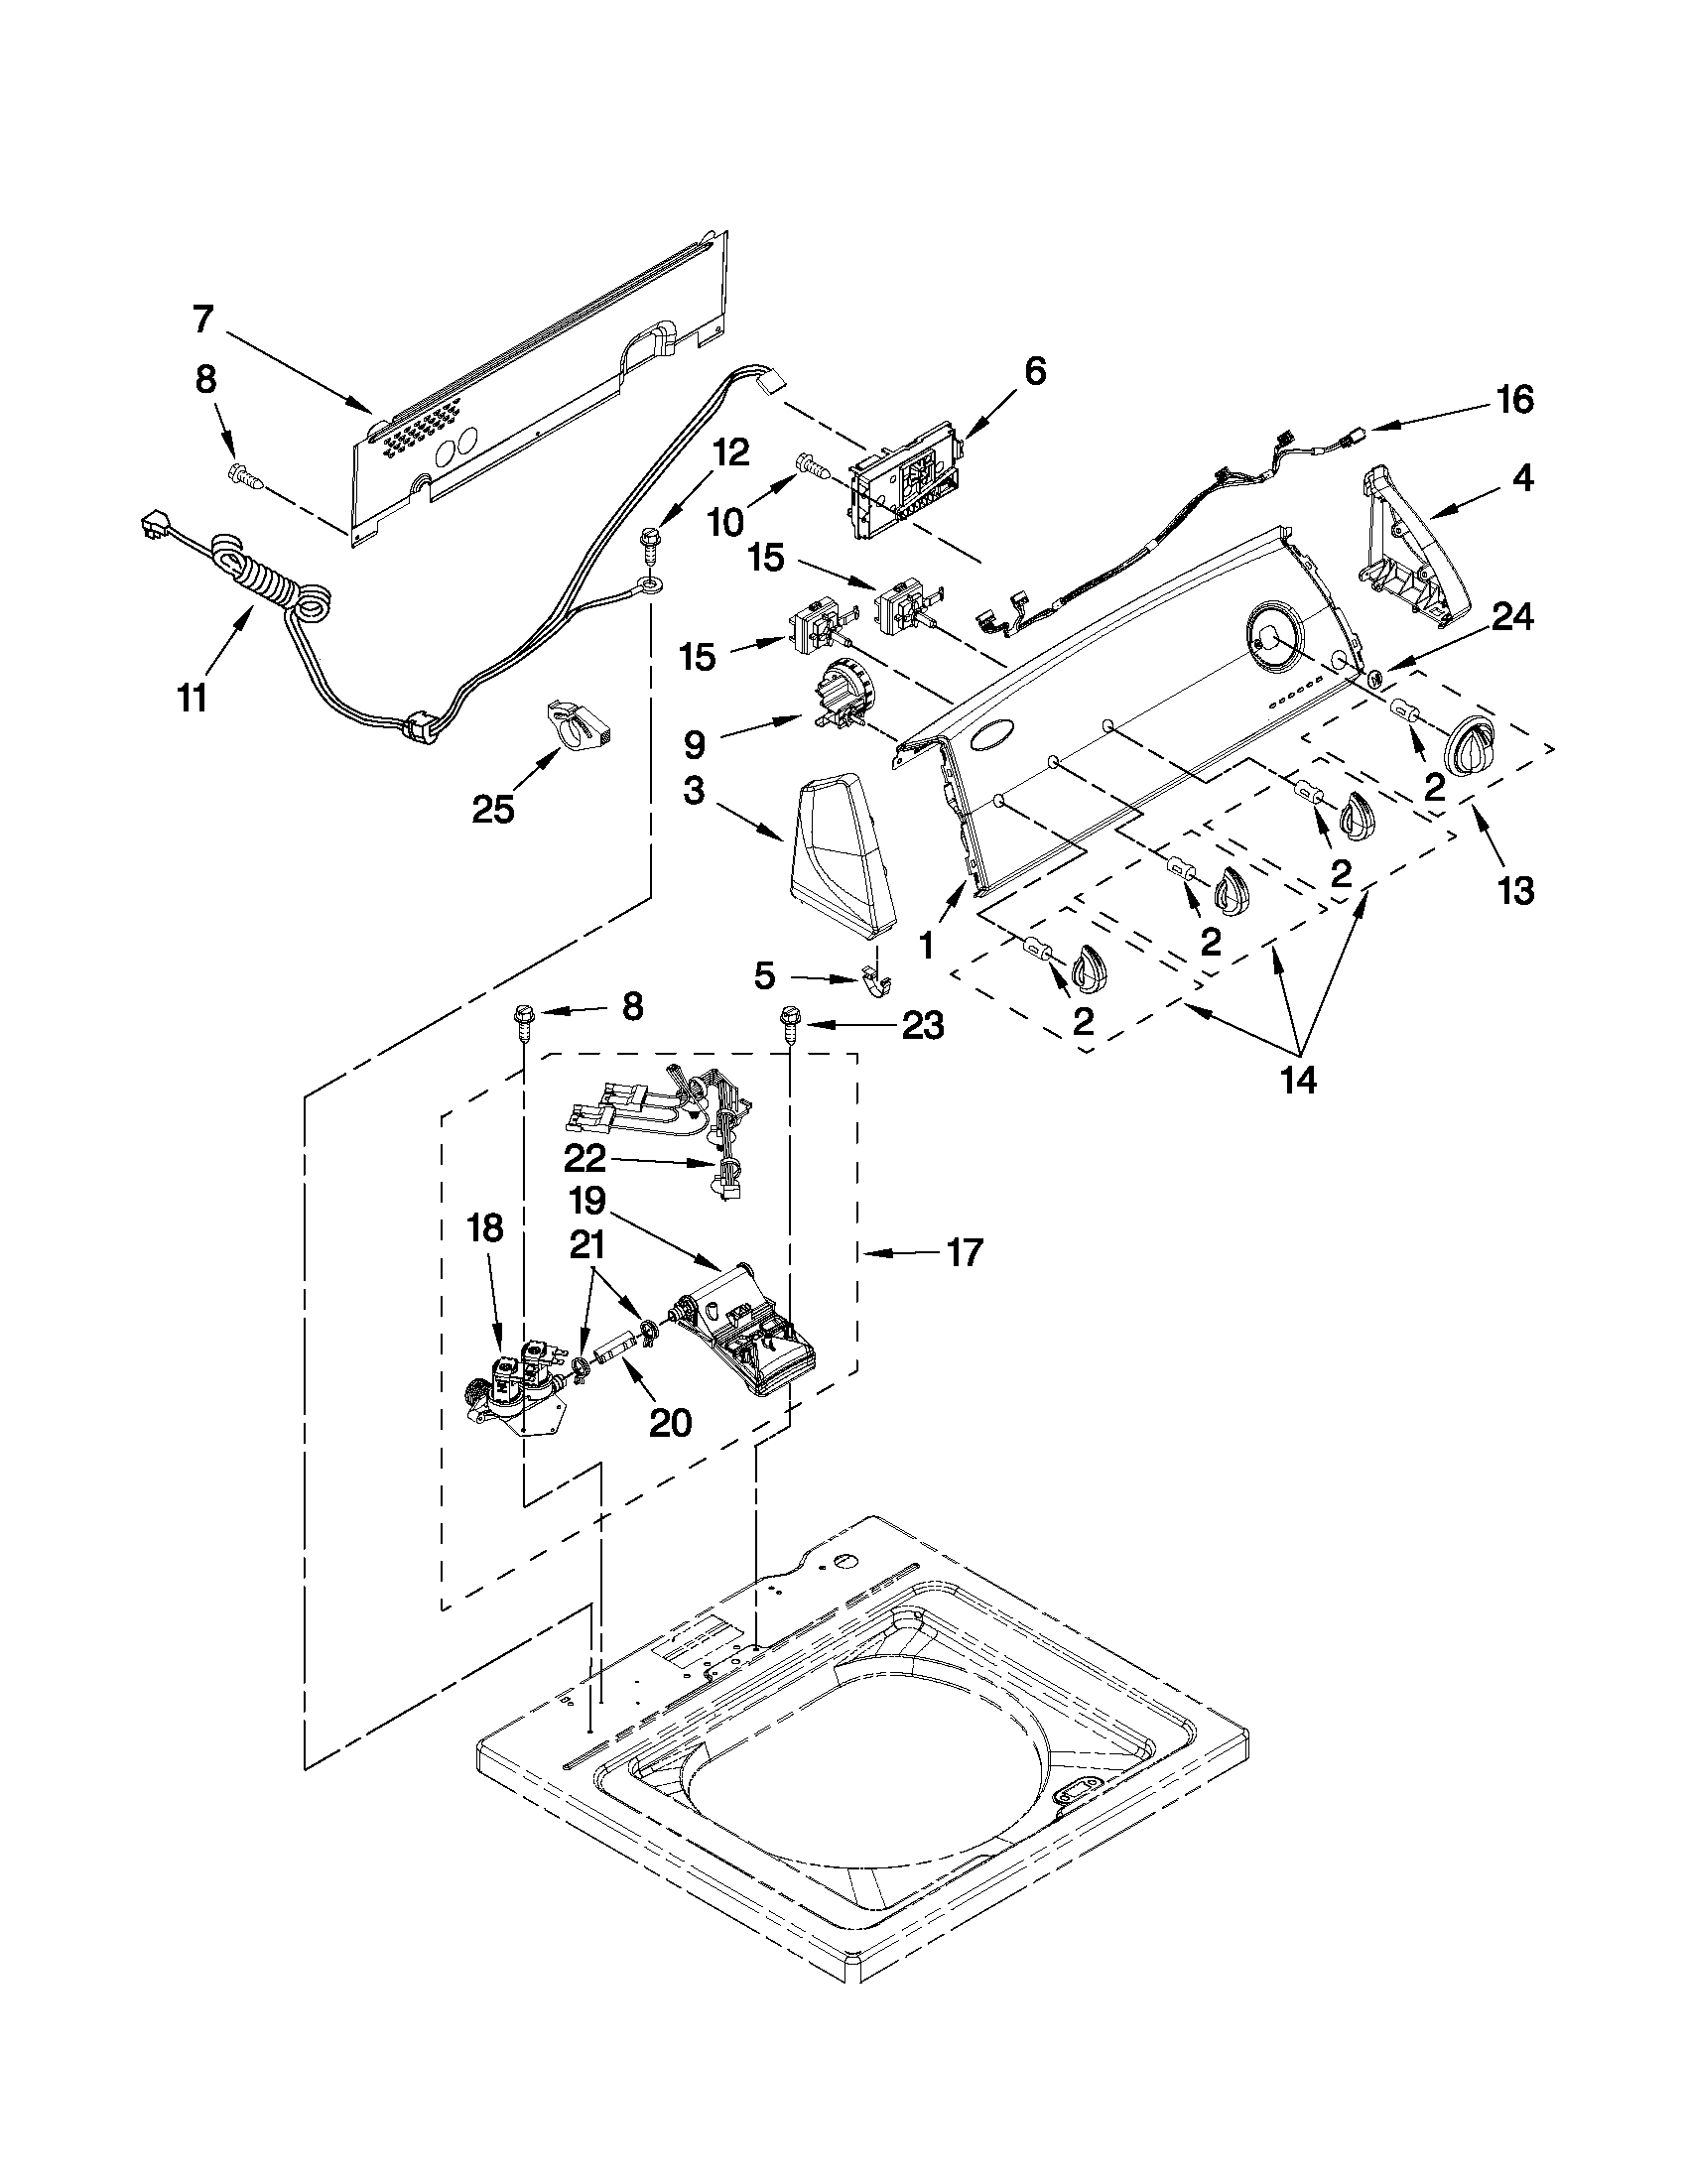 CONTROLS AND WATER INLET PARTS Diagram & Parts List for